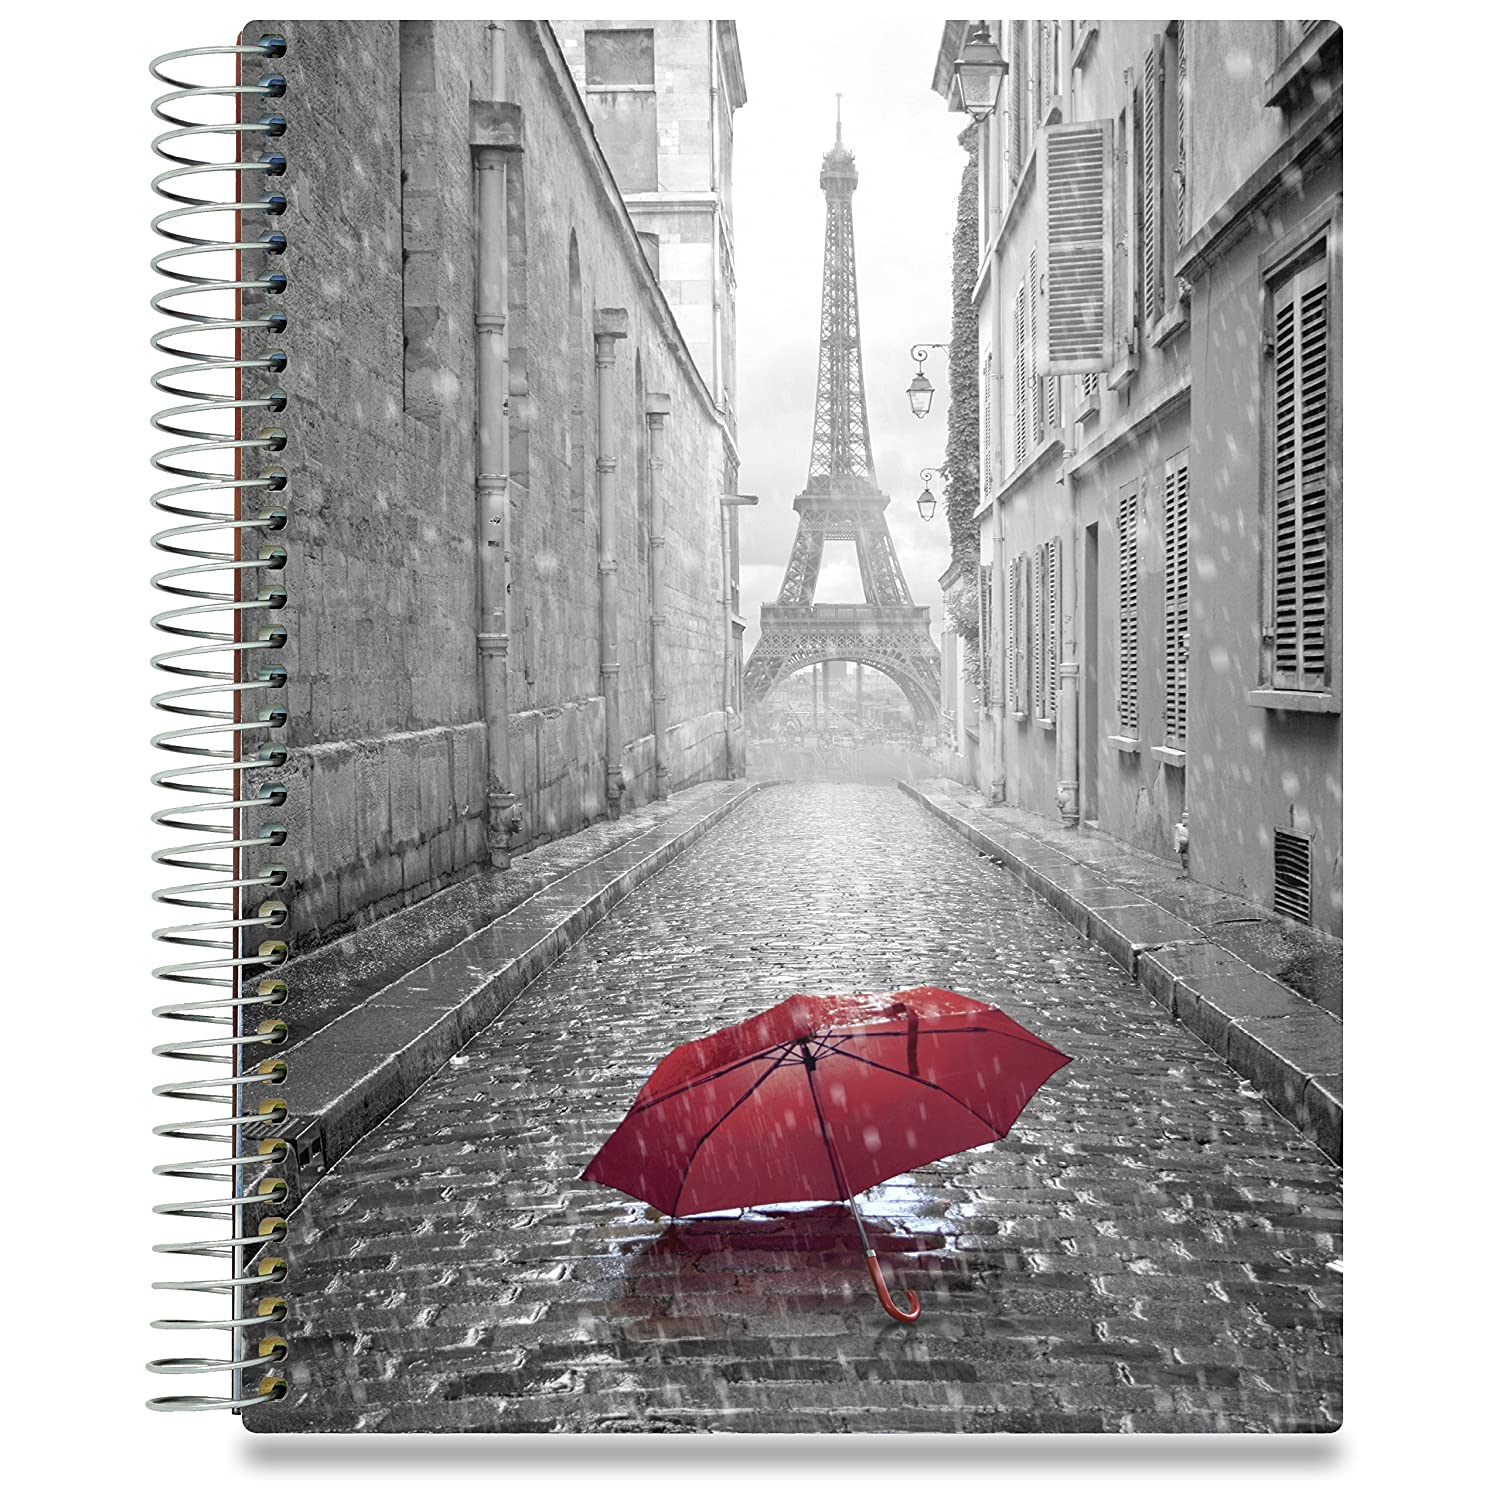 Amazon.com : Planner 2018 by Tools4Wisdom Planners - 8.5 x 11 ...